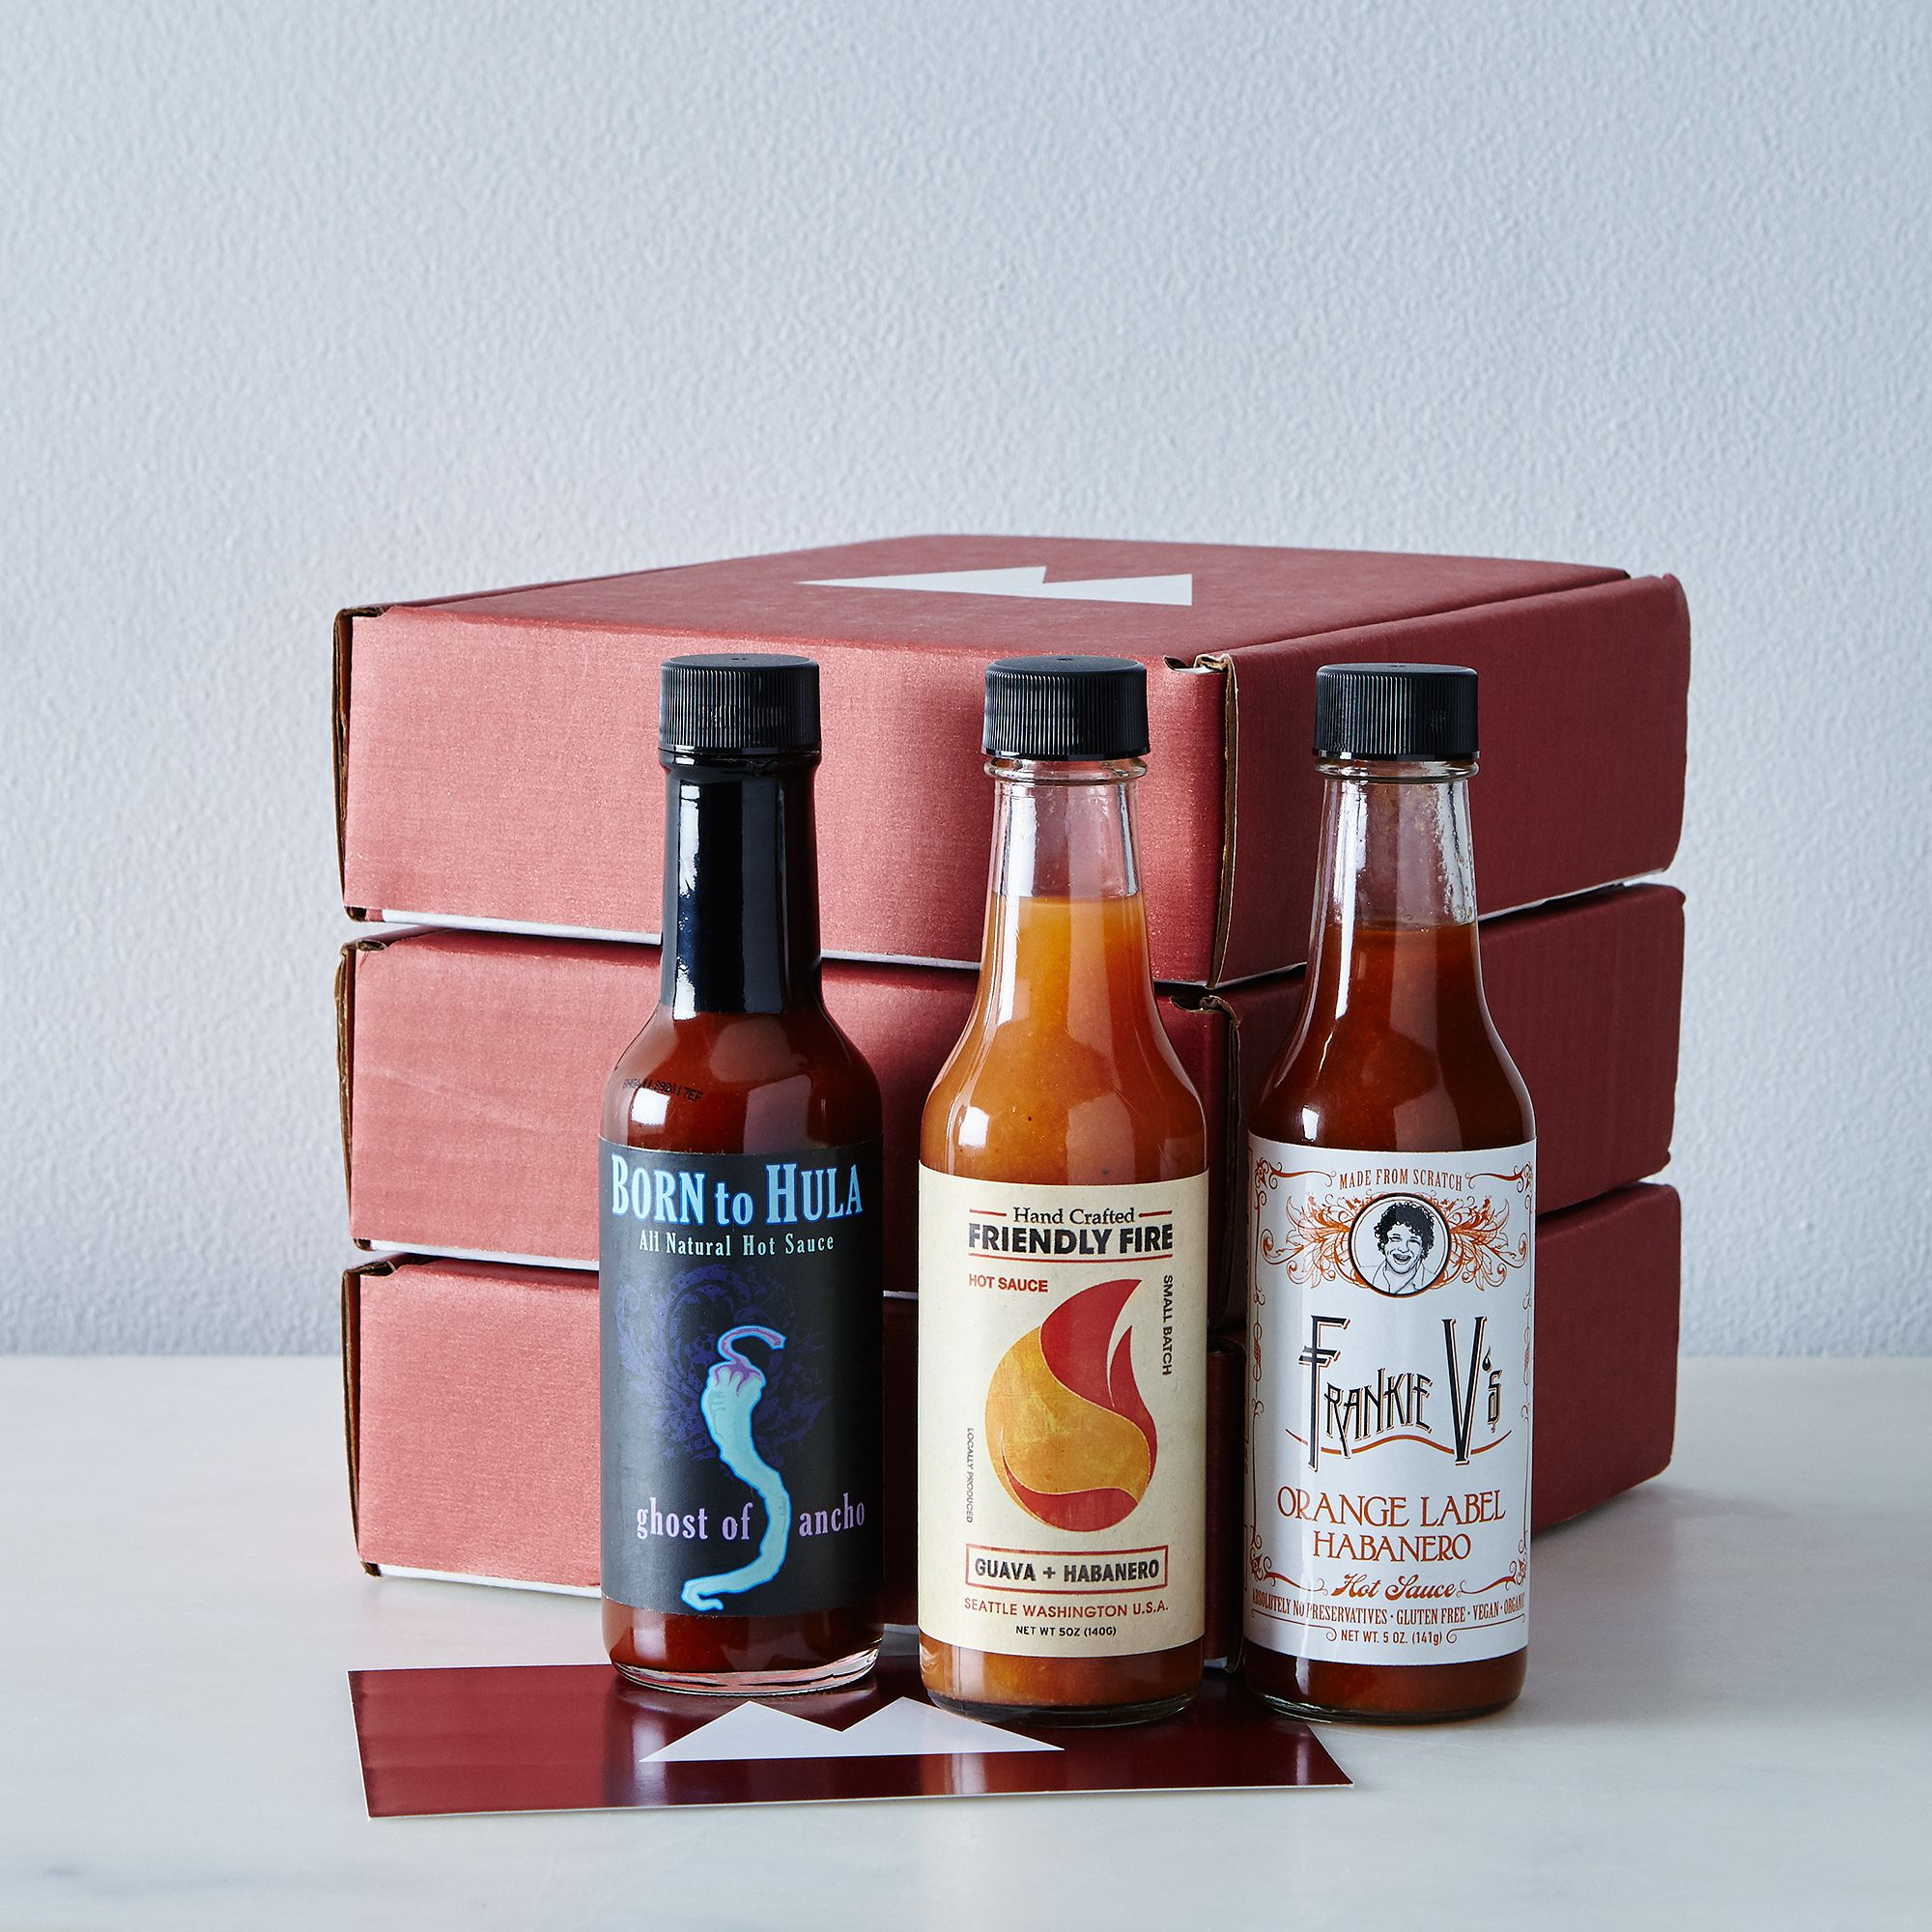 Gourmet gifts for Father's Day: Artisanal hot sauce subscription